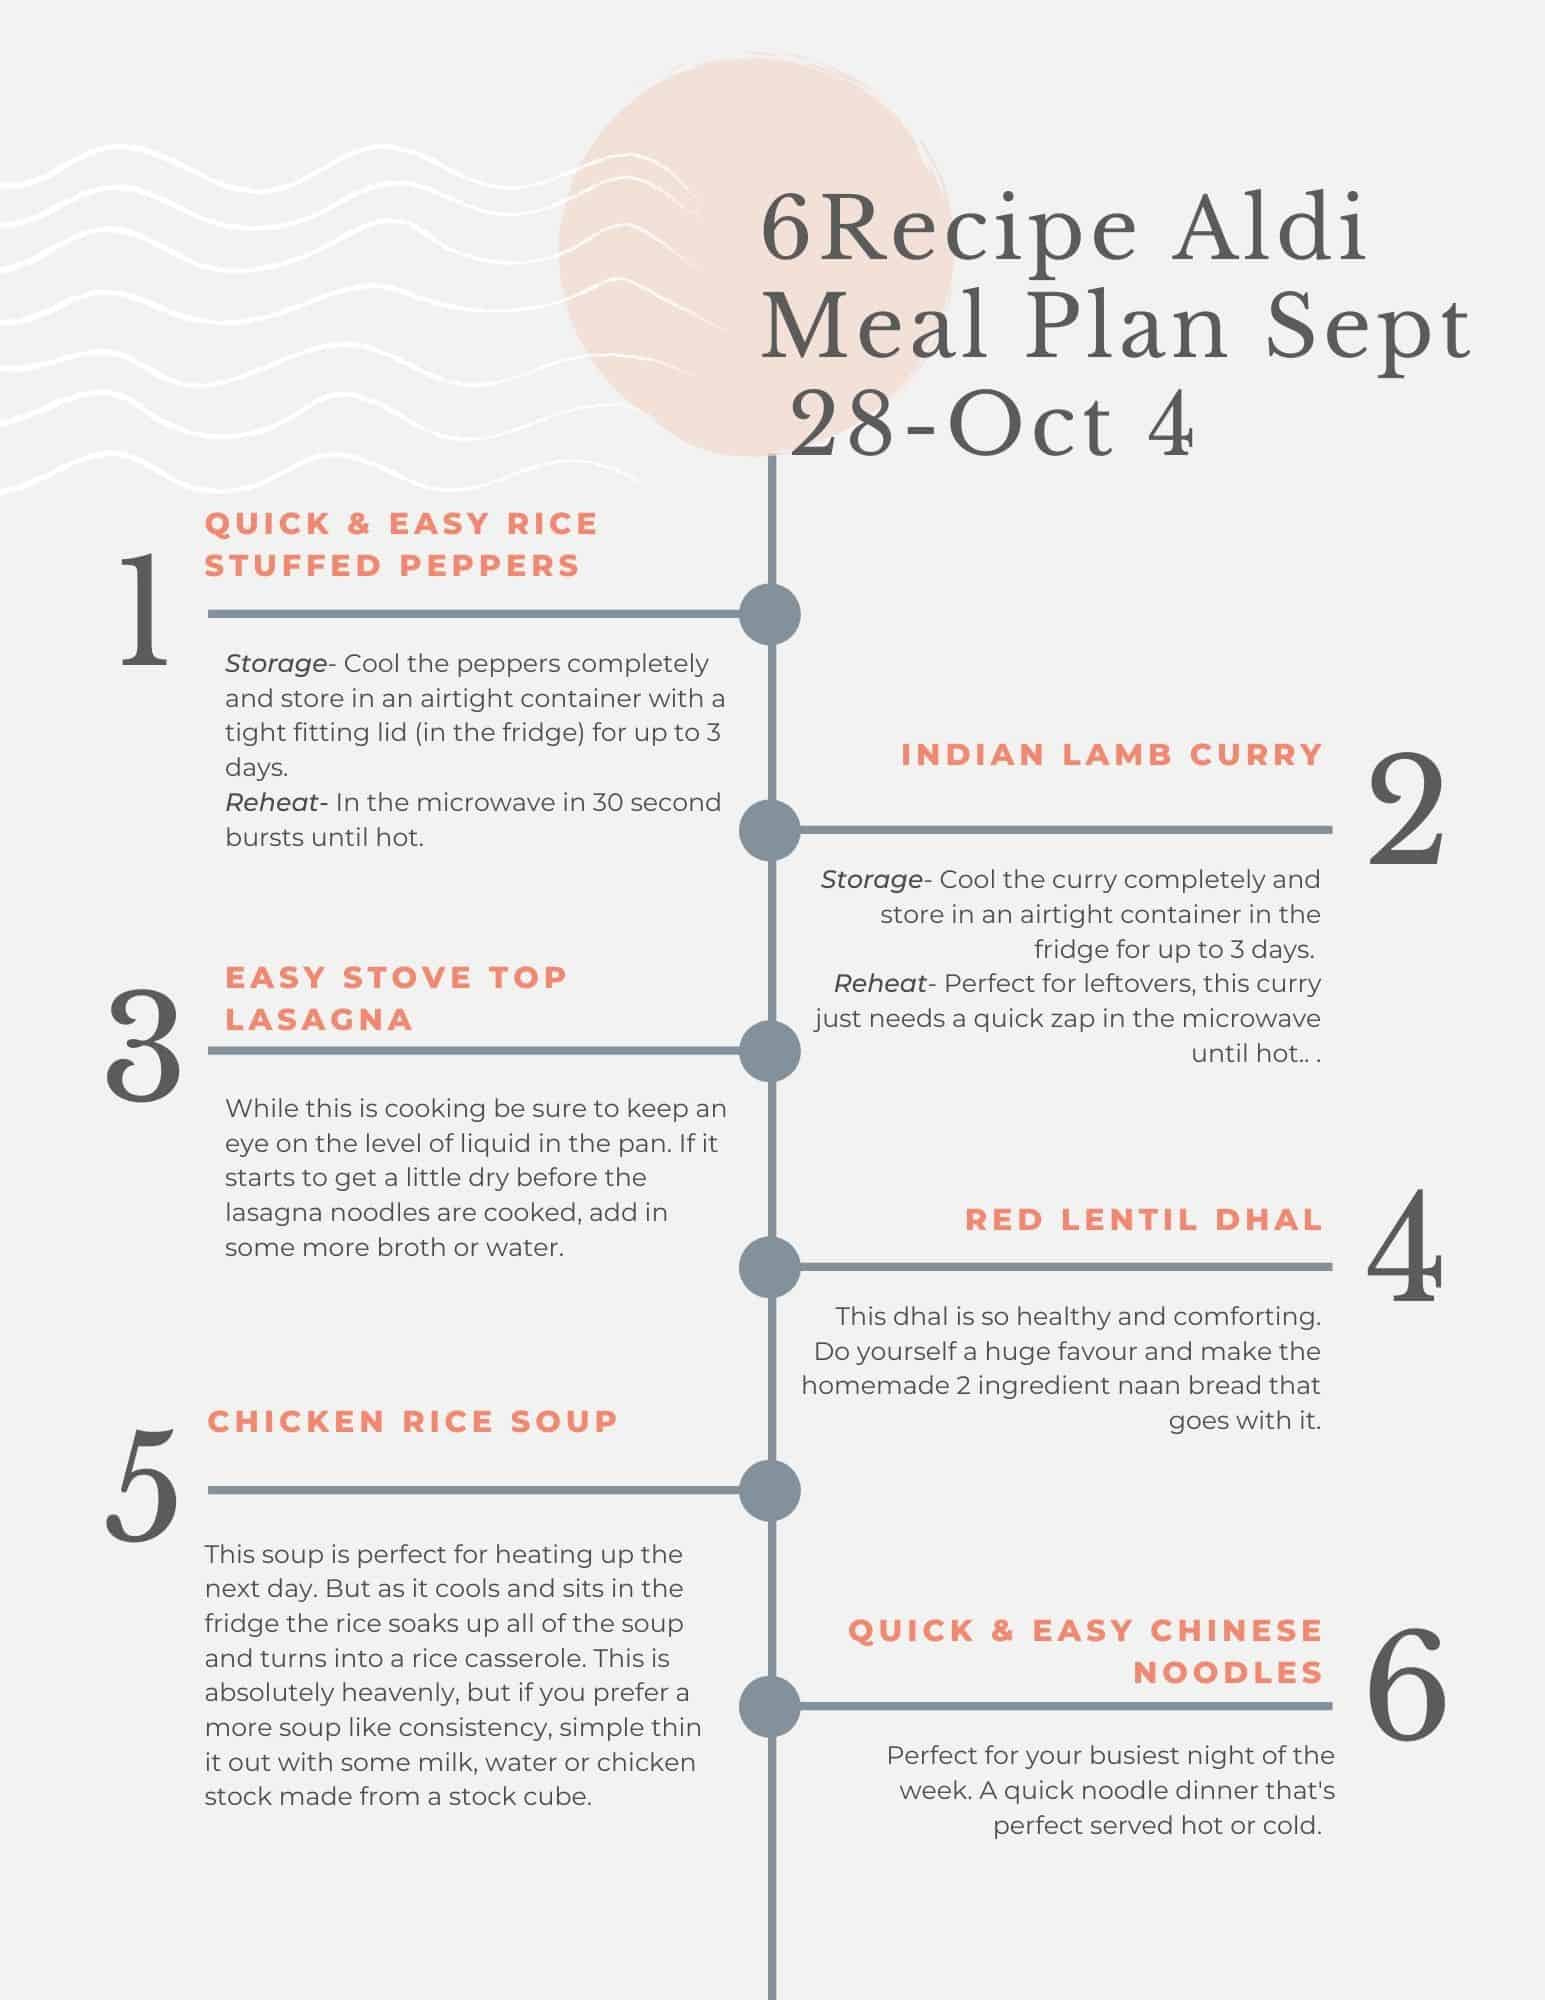 Tip sheet for the Aldi recipe meal plan. Budget meal plan.